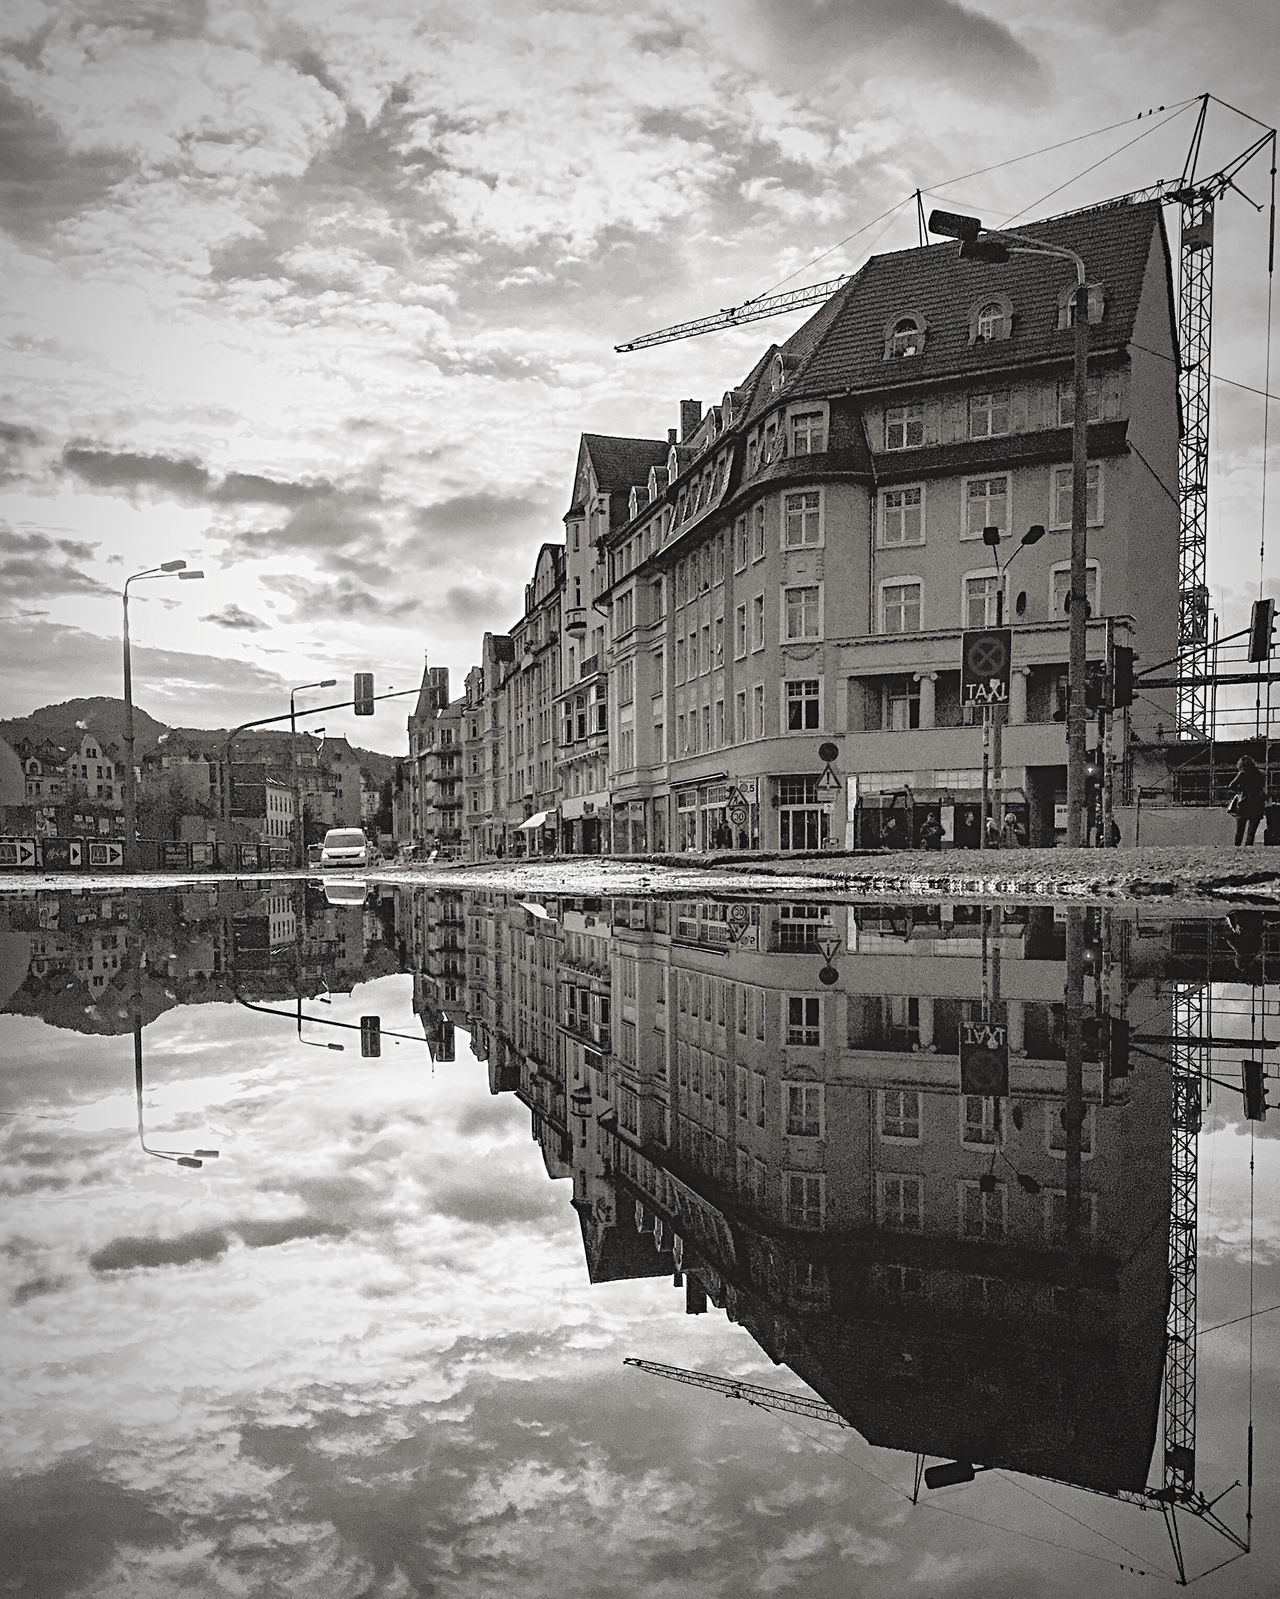 Monochrome Photography Architecture Architecture_collection Monochrome Architecture Built Structure Puddle Puddleography Puddle Reflections Reflctions Thuringen